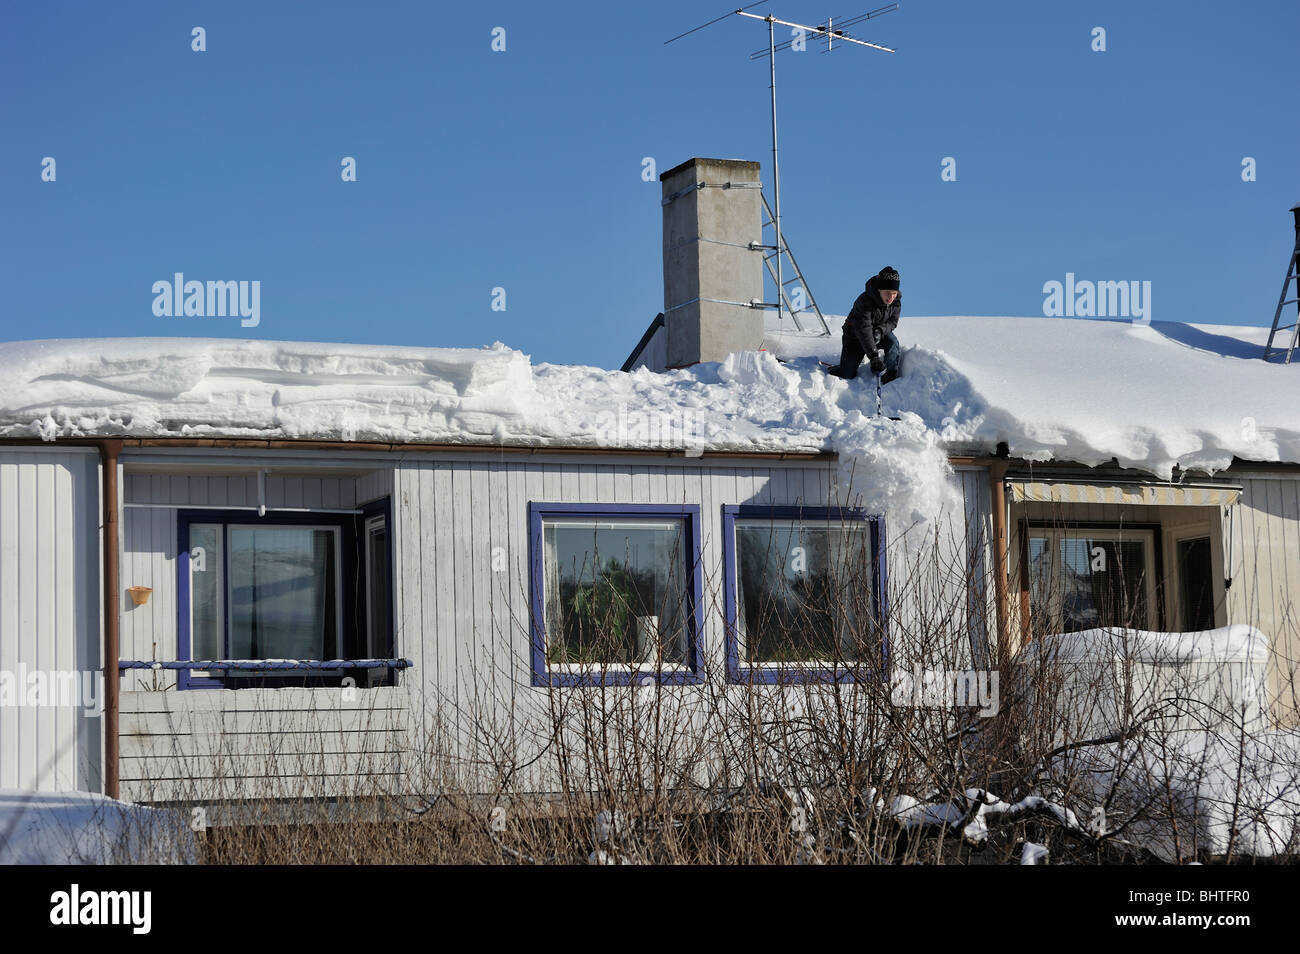 Roof snow clearer. - Stock Image